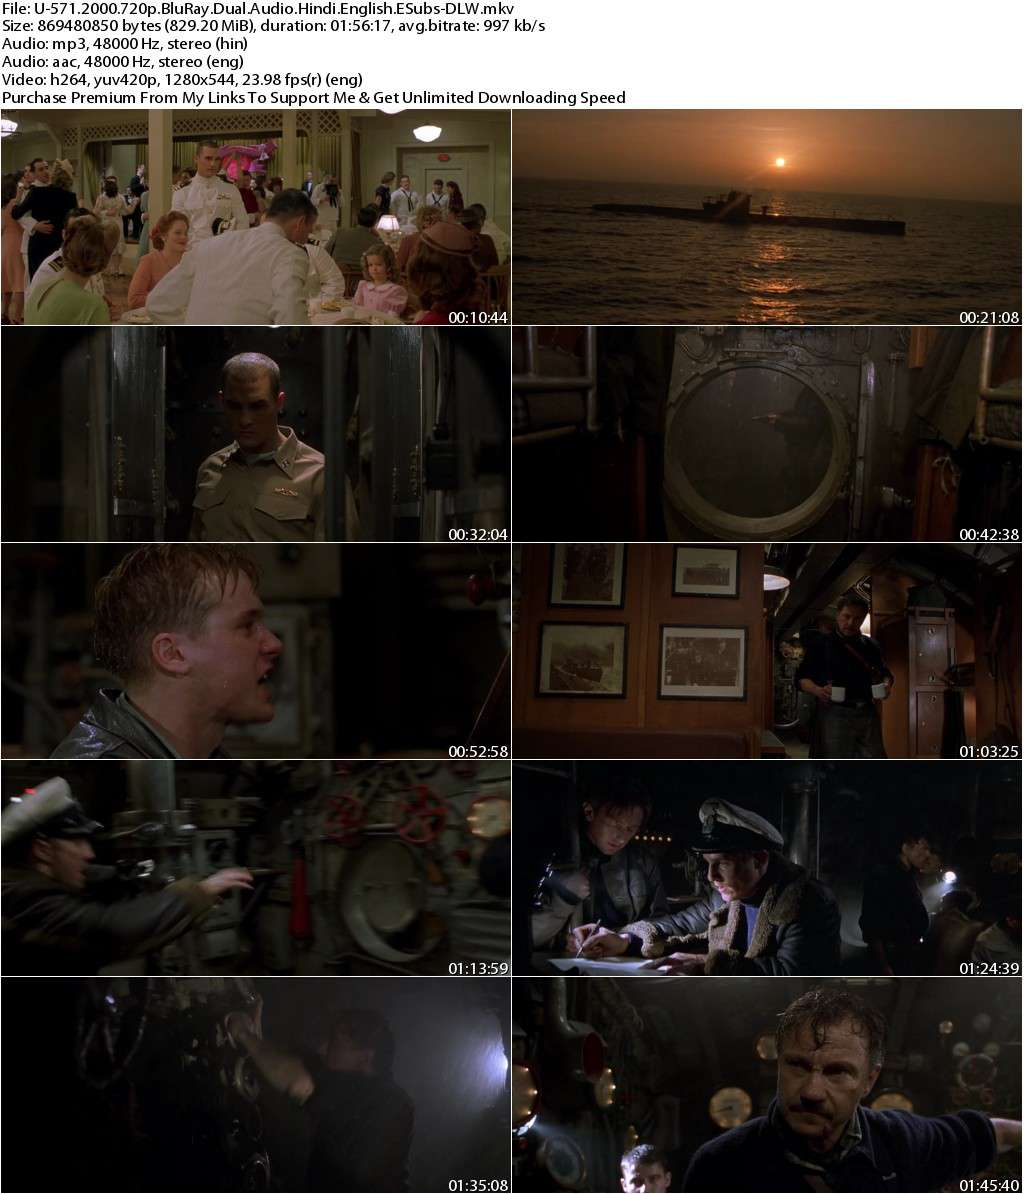 U-571 (2000) 720p BluRay Dual Audio [Hindi+English] ESubs-DLW